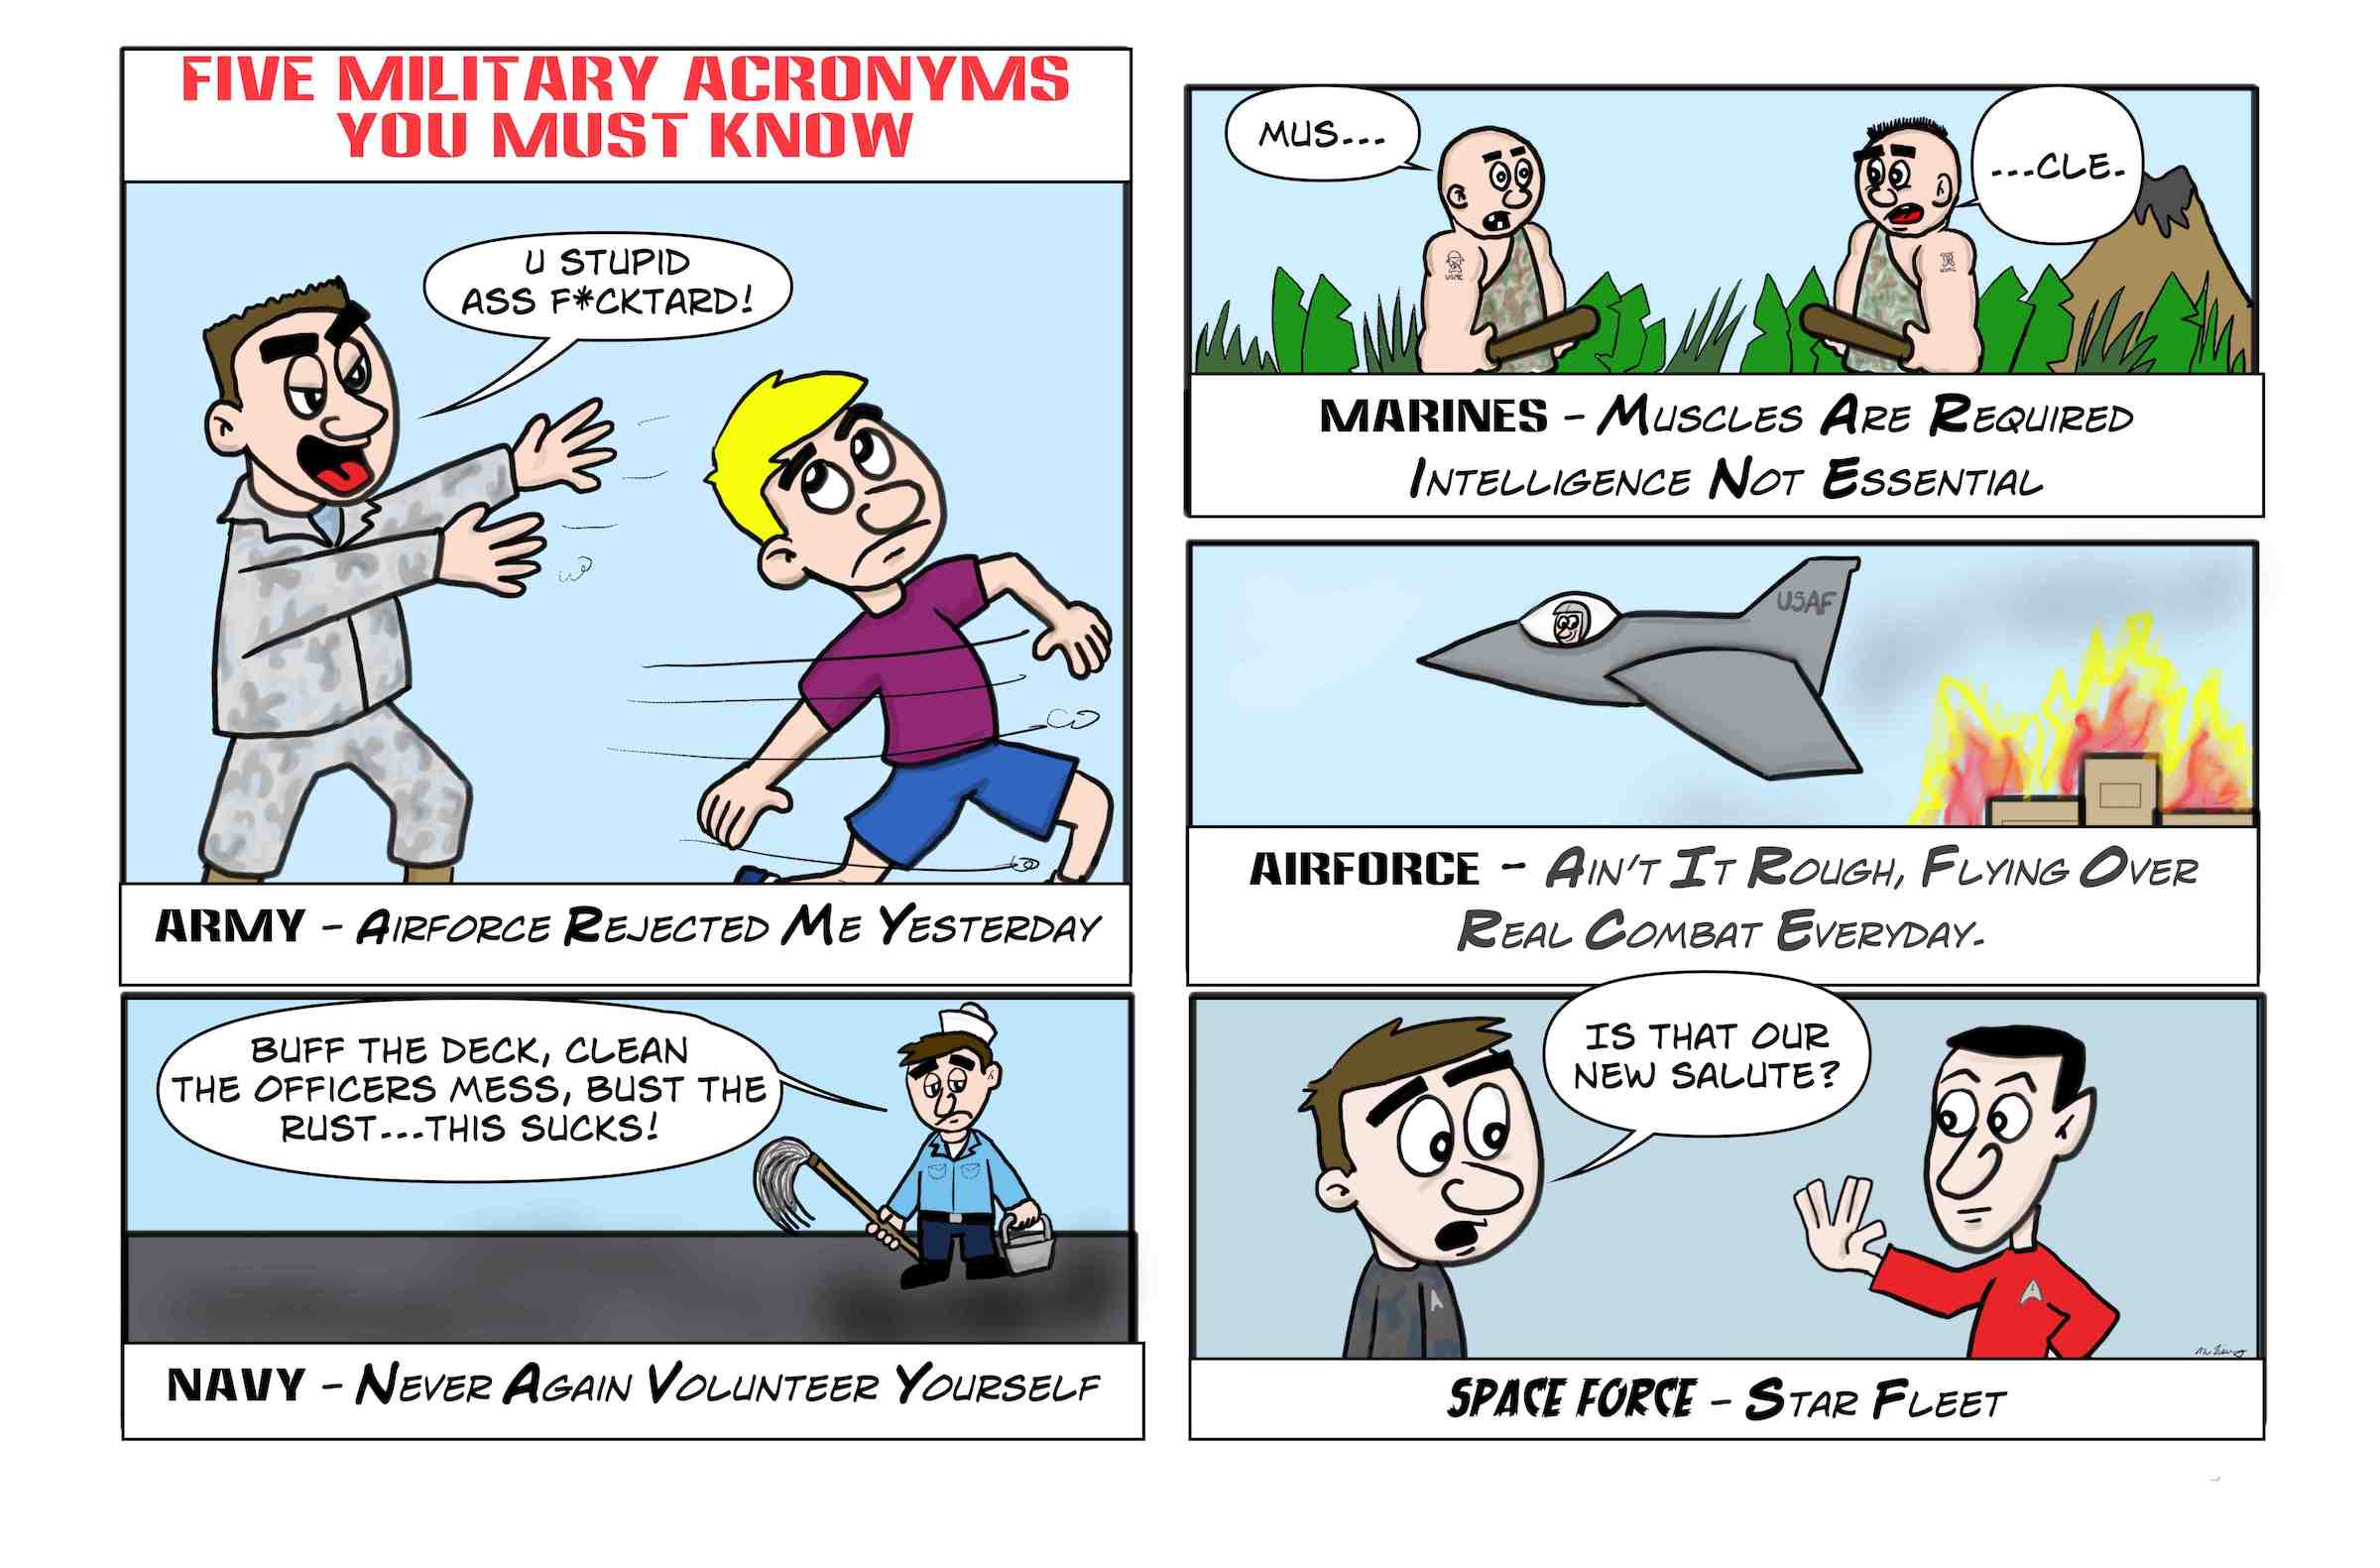 There are funny military acronyms about each branch of service.